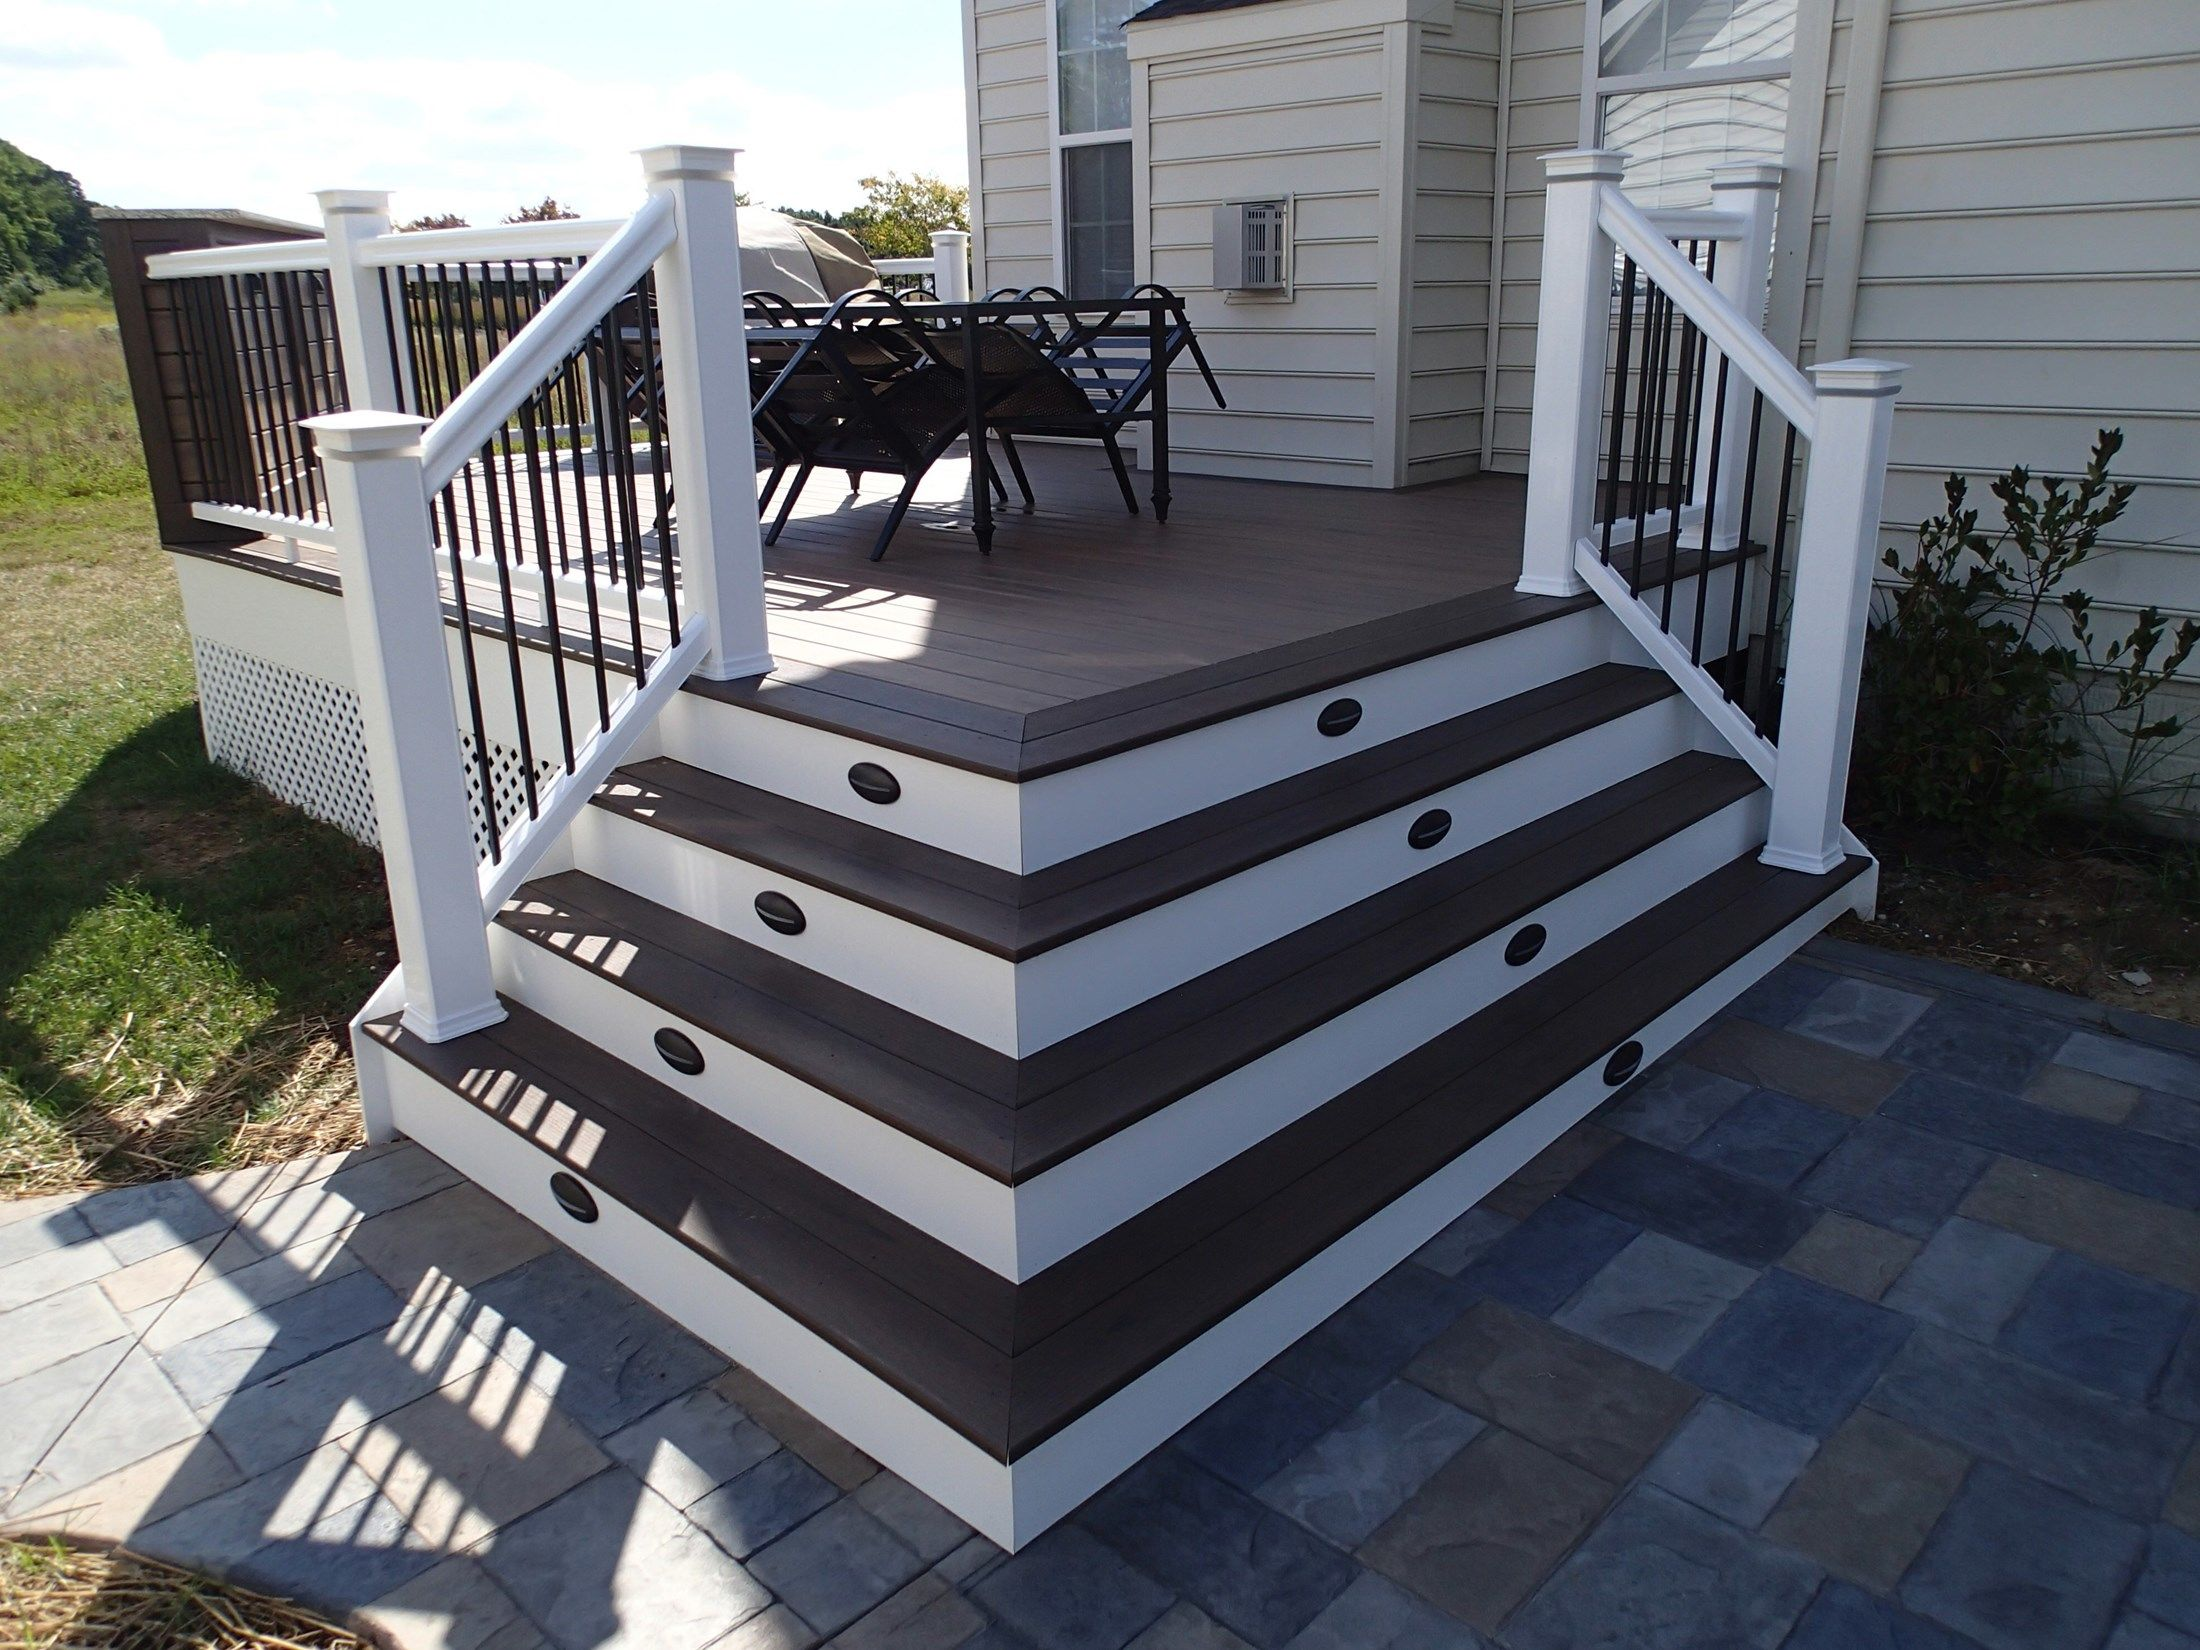 Composite Decks With PVC Vinyl Railing - Picture 6435